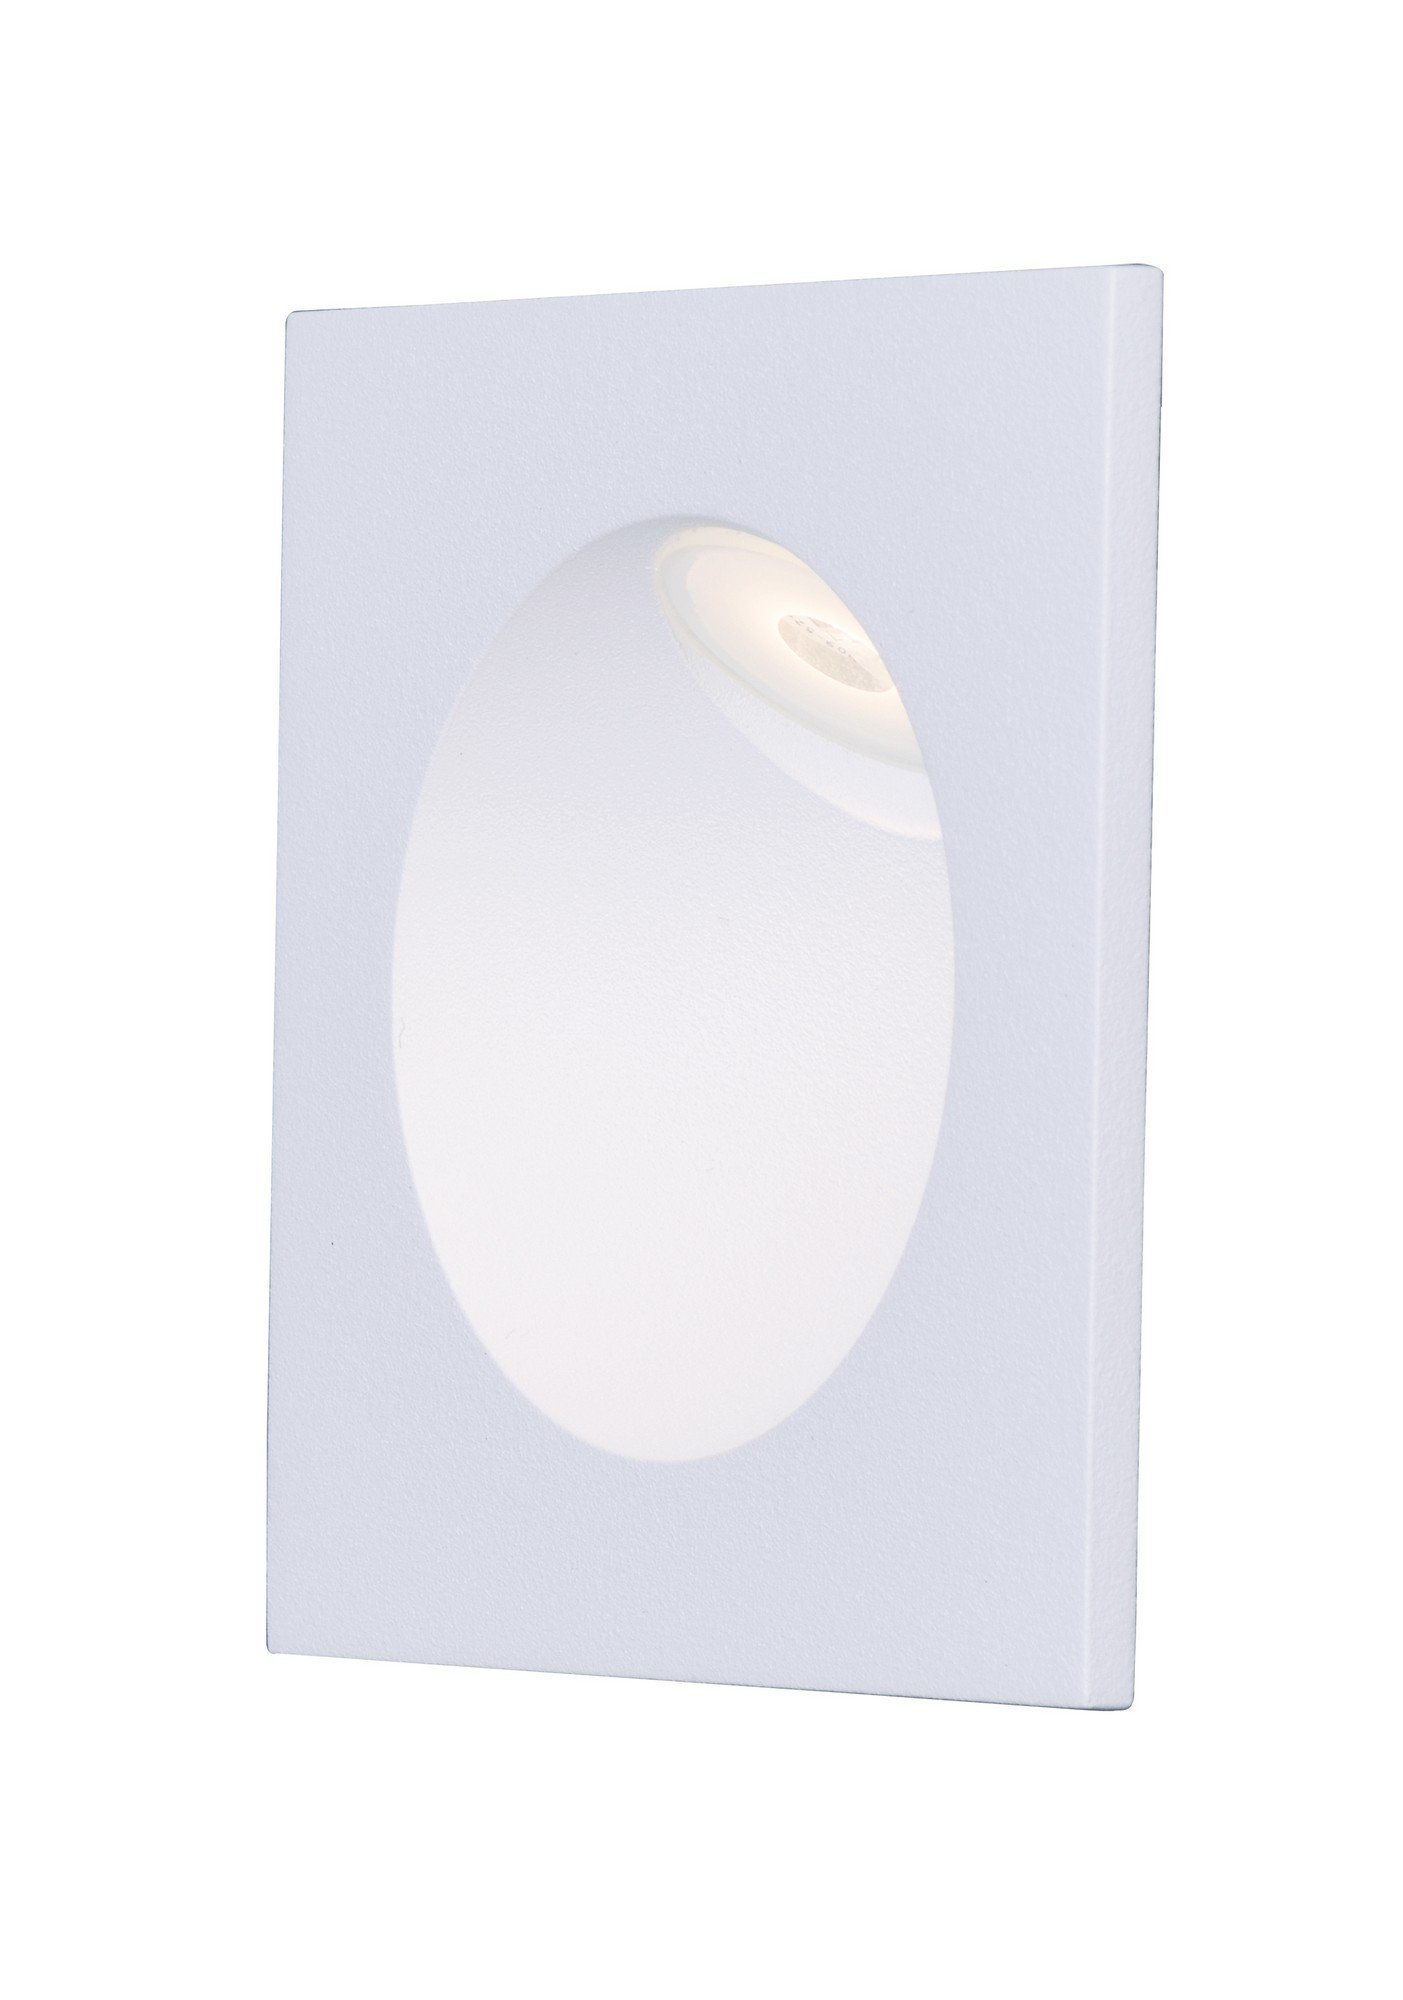 ET2 E41403-WT Alumilux LED Outdoor Wall Sconce, White Finish, Glass, PCB LED Bulb, 50W Max., Dry Safety Rated, Shade Material, 468 Rated Lumens